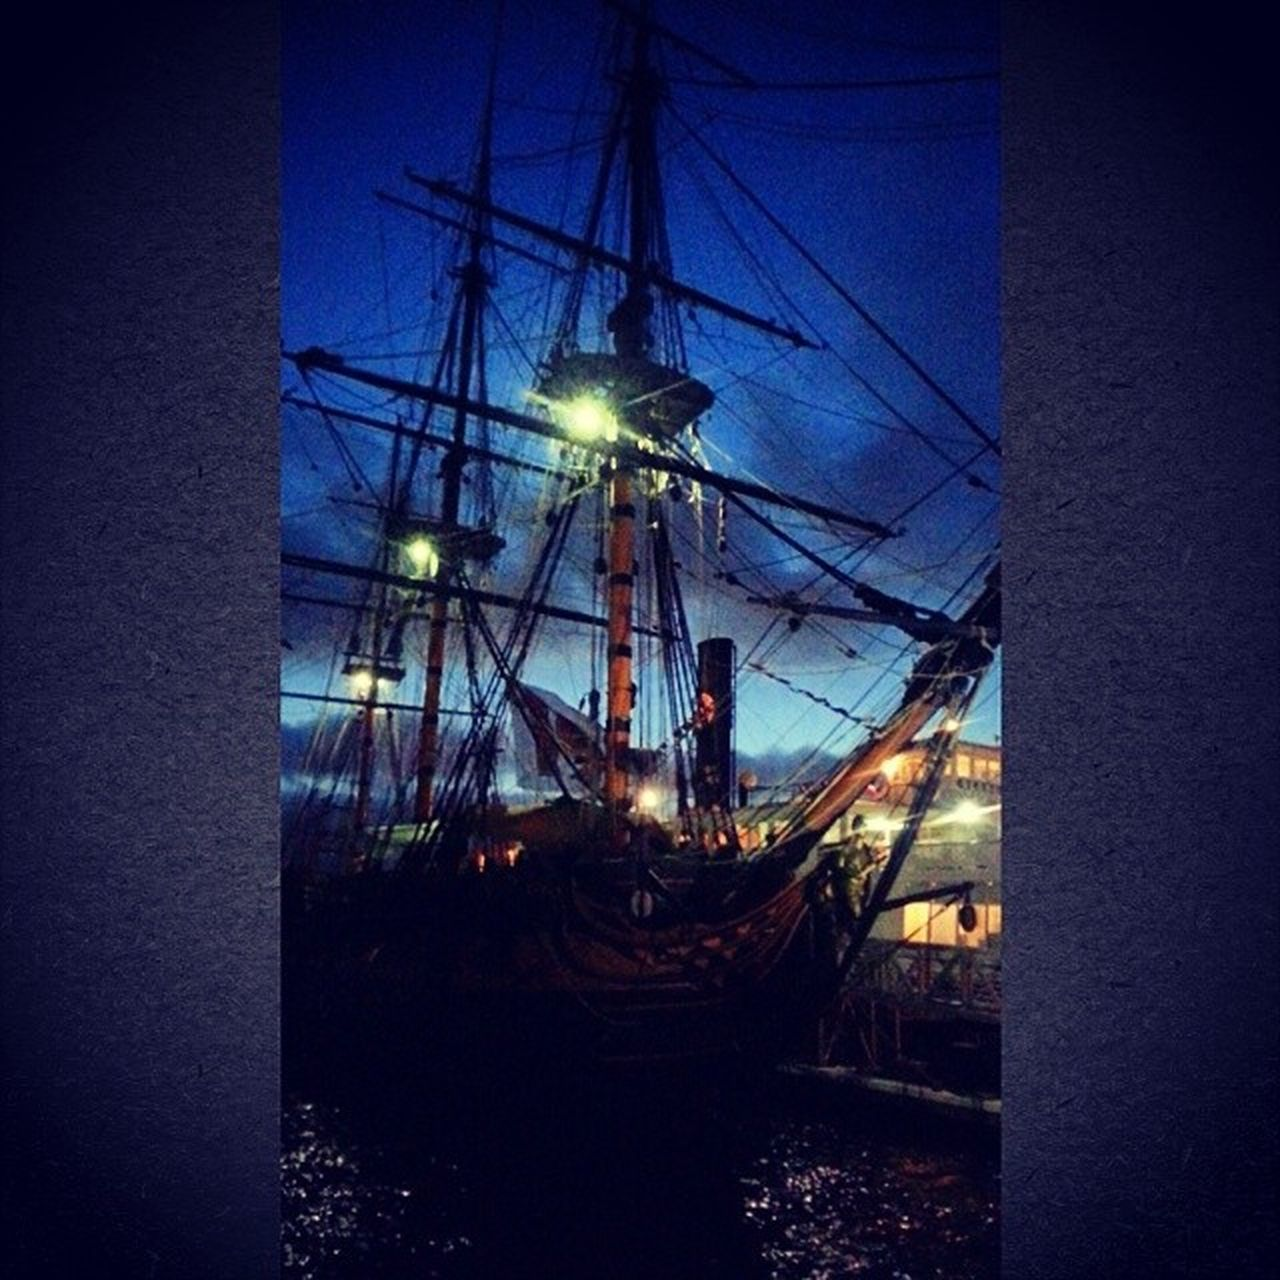 Pirateship  Piratesofthecarribean Sandiegolife Picoftheday amazing Sandiego bay imagination nofilter